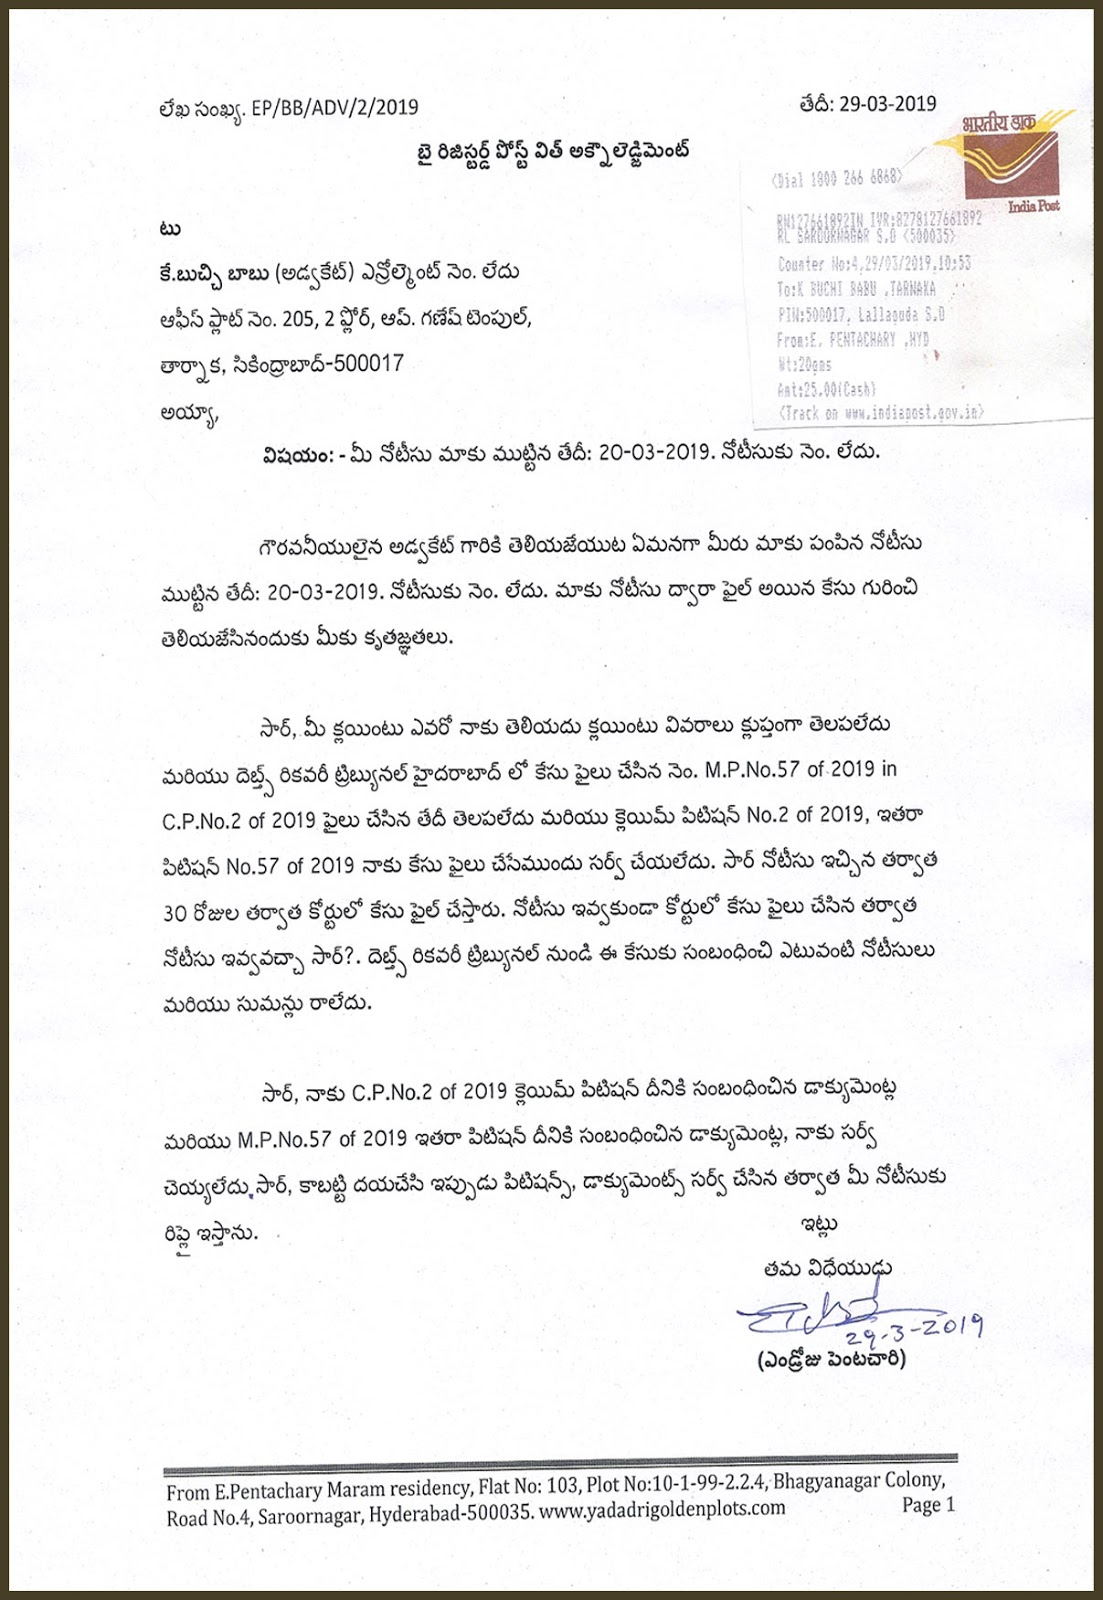 K.Buchi Babu, DRT-Hyderabad, Advocate, Lawyers